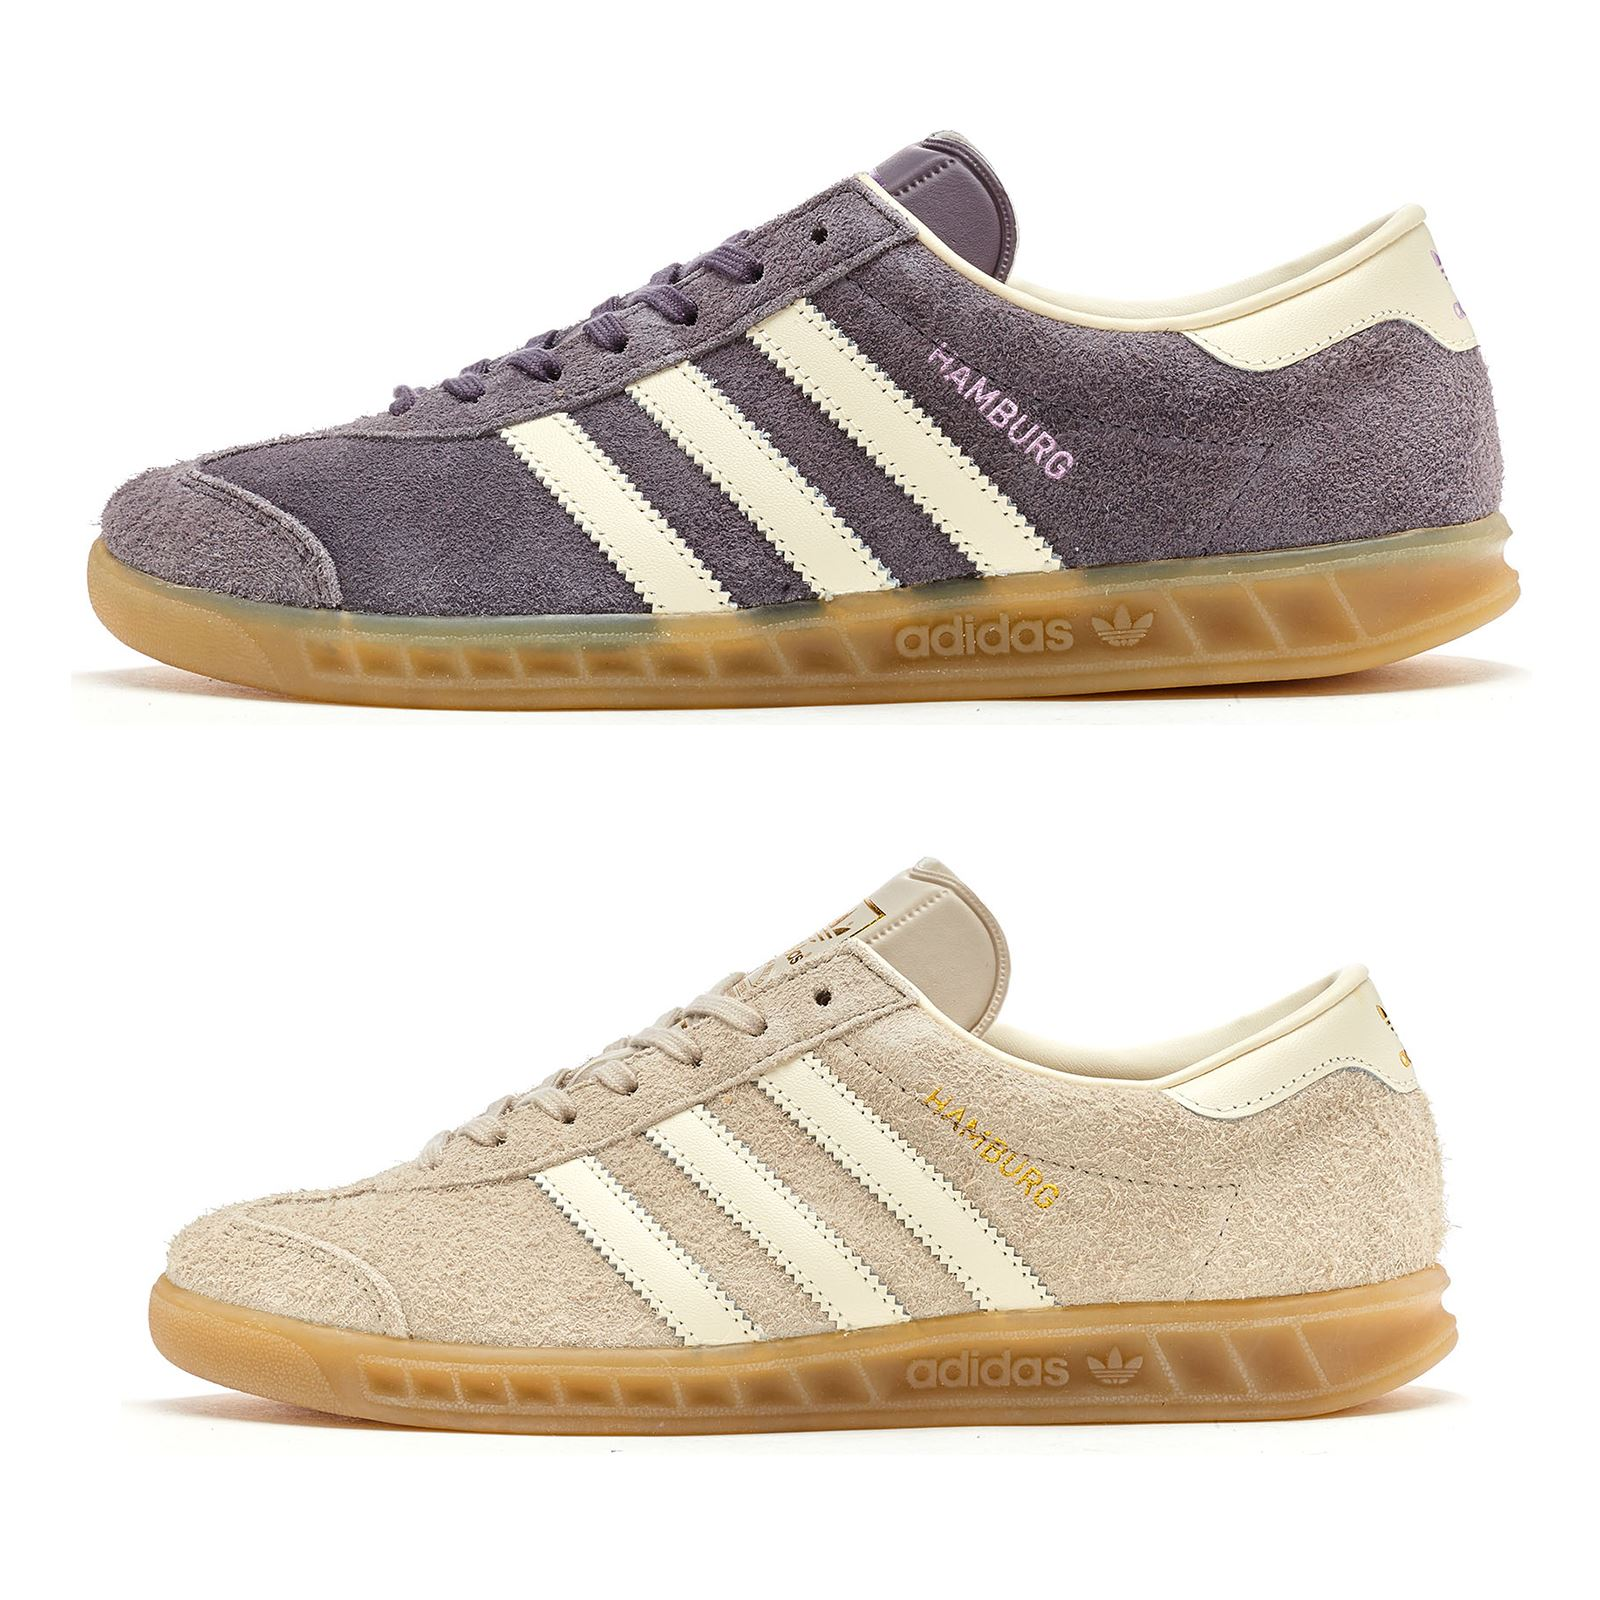 Adidas Hamburg Women Trainers in Clear Brown   Trace Grey in All Sizes d5387c0c3